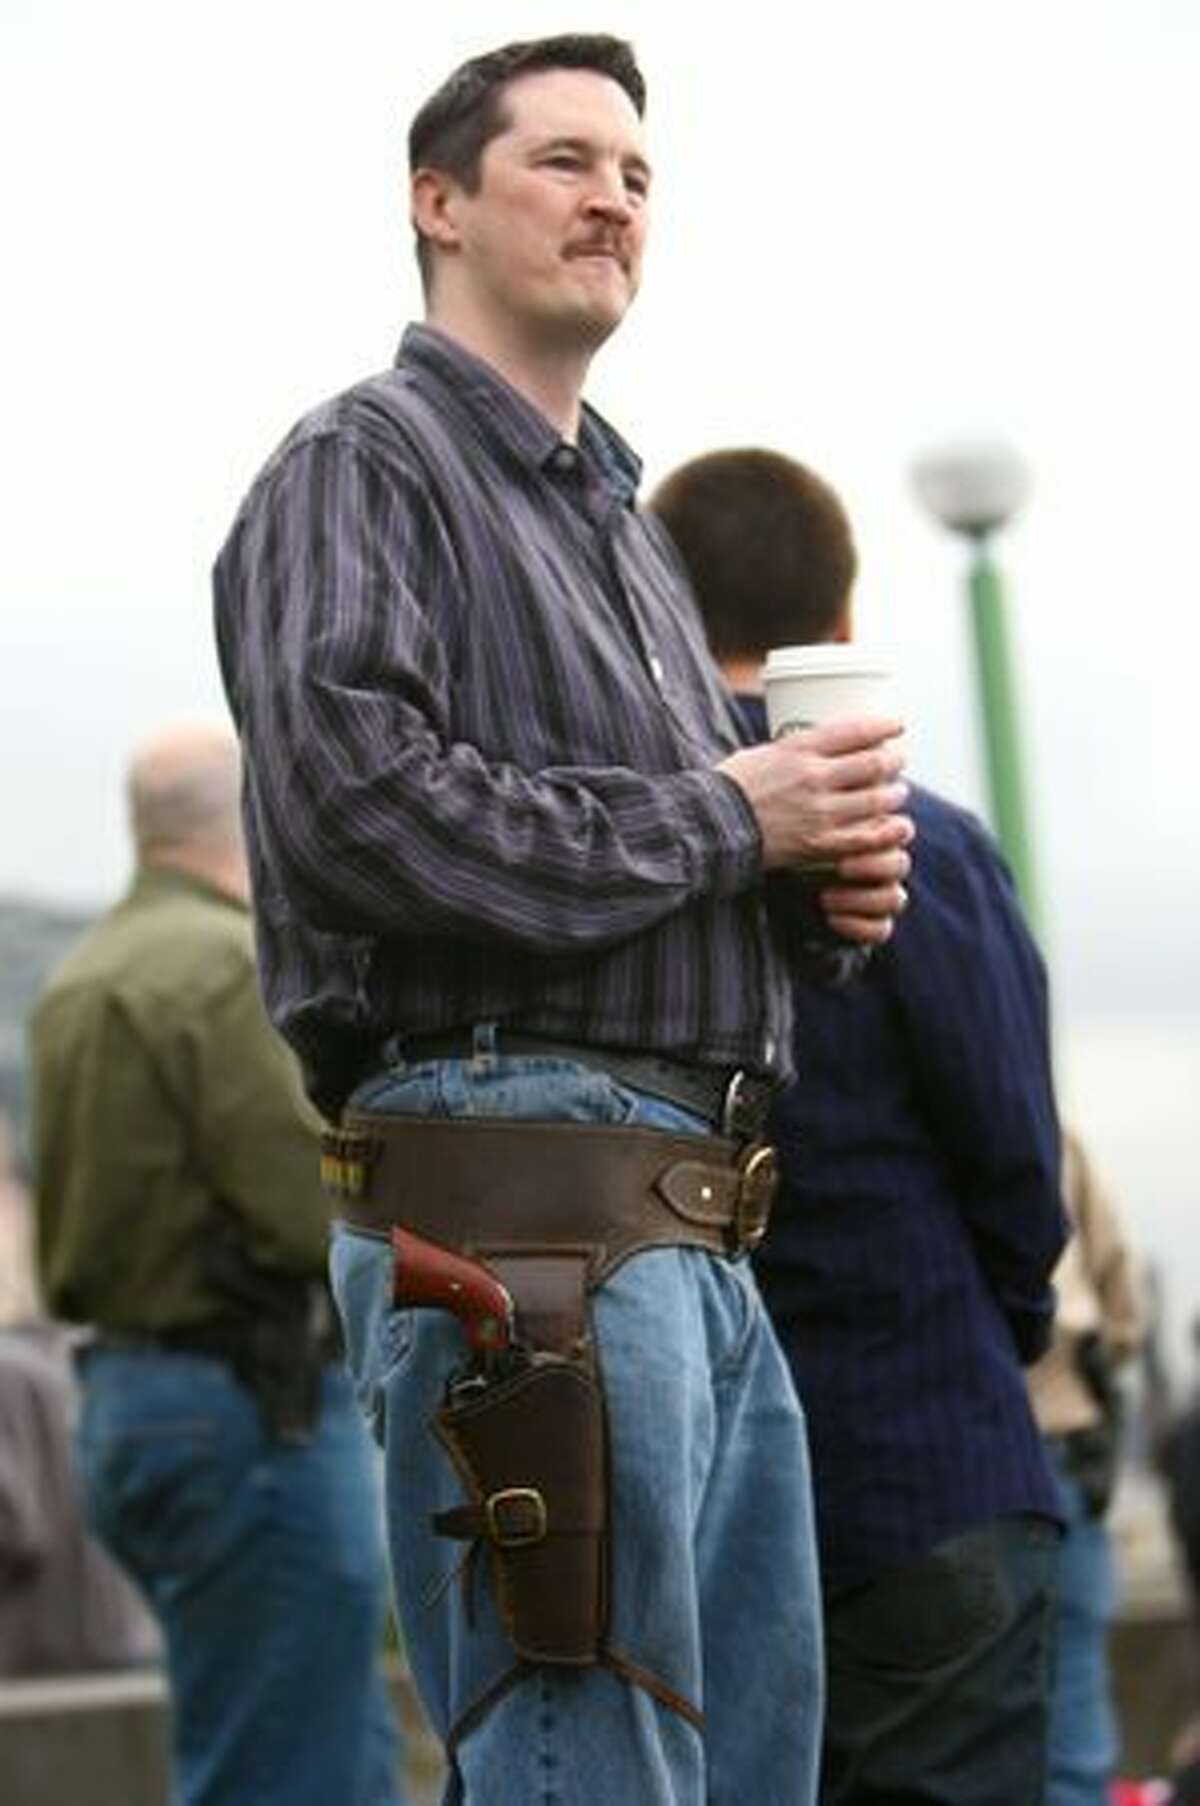 Shannon Dunne drinks a Starbucks coffee while wearing his Ruger Vaquero 45 Colt during a press event at Victor Steinbrueck Park. Washington CeaseFire, the Brady Campaign to Prevent Gun Violence, and Washington State Million Mom March hope to pressure the chain into adopting a no-guns policy in all its stores.